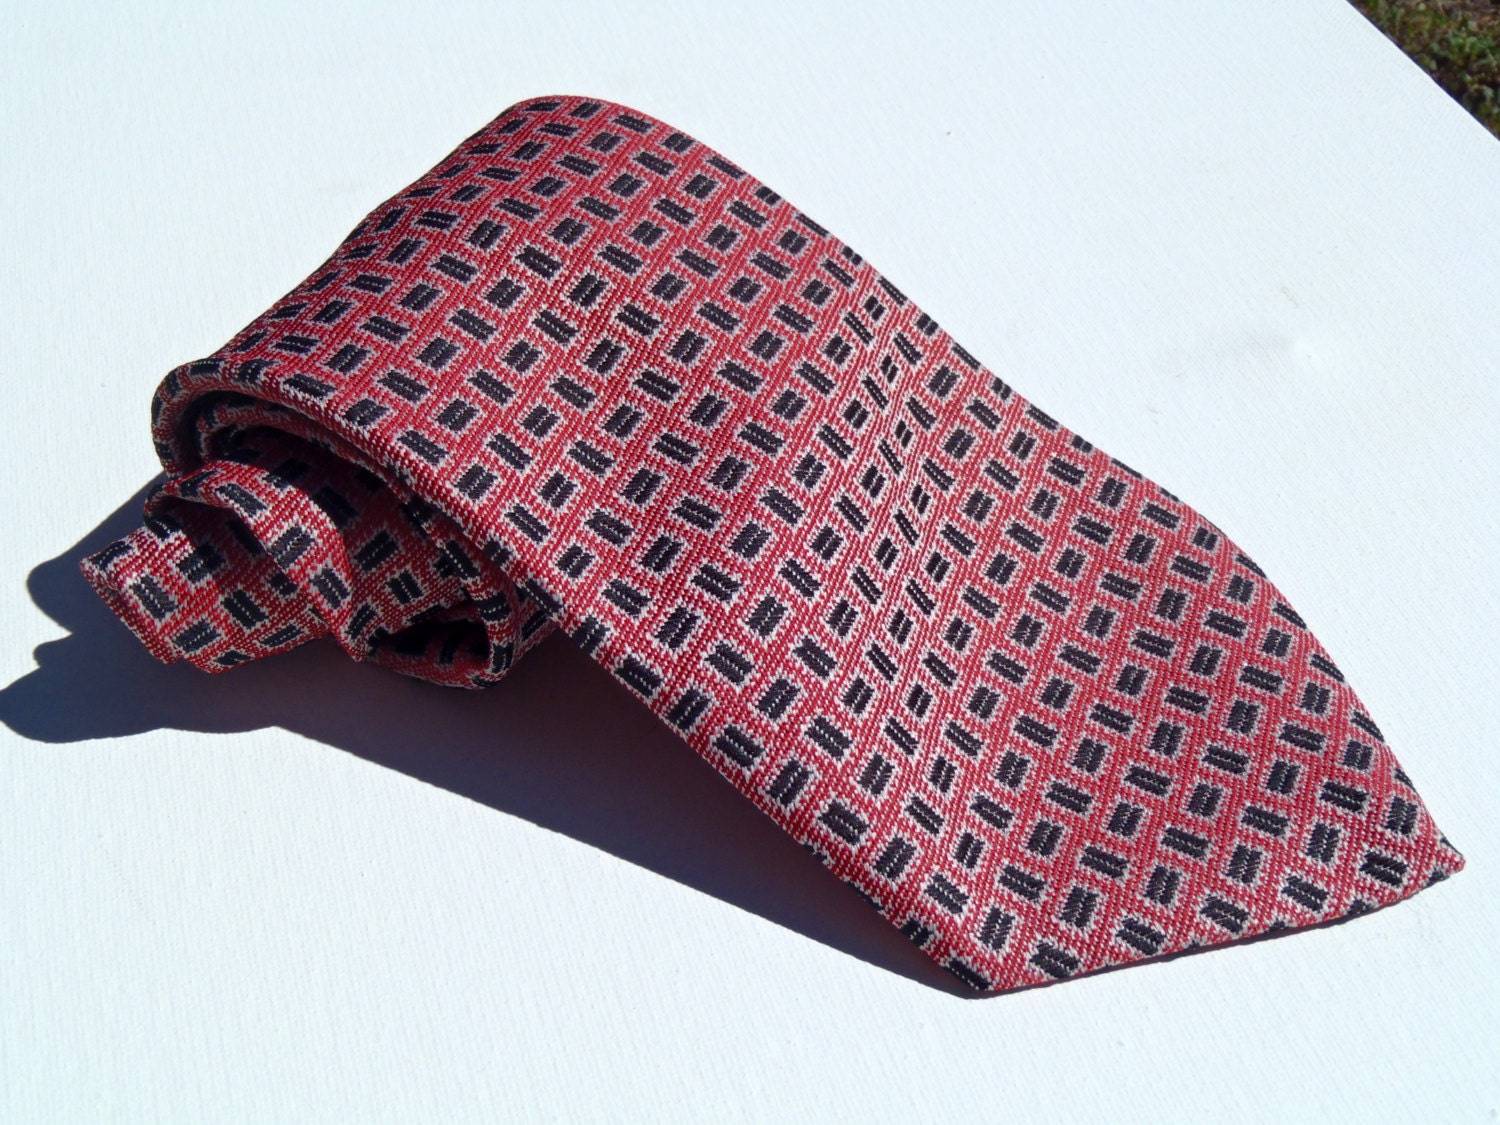 Vintage 1970s Wide Red Tie With Black Rectangles Haute Juice